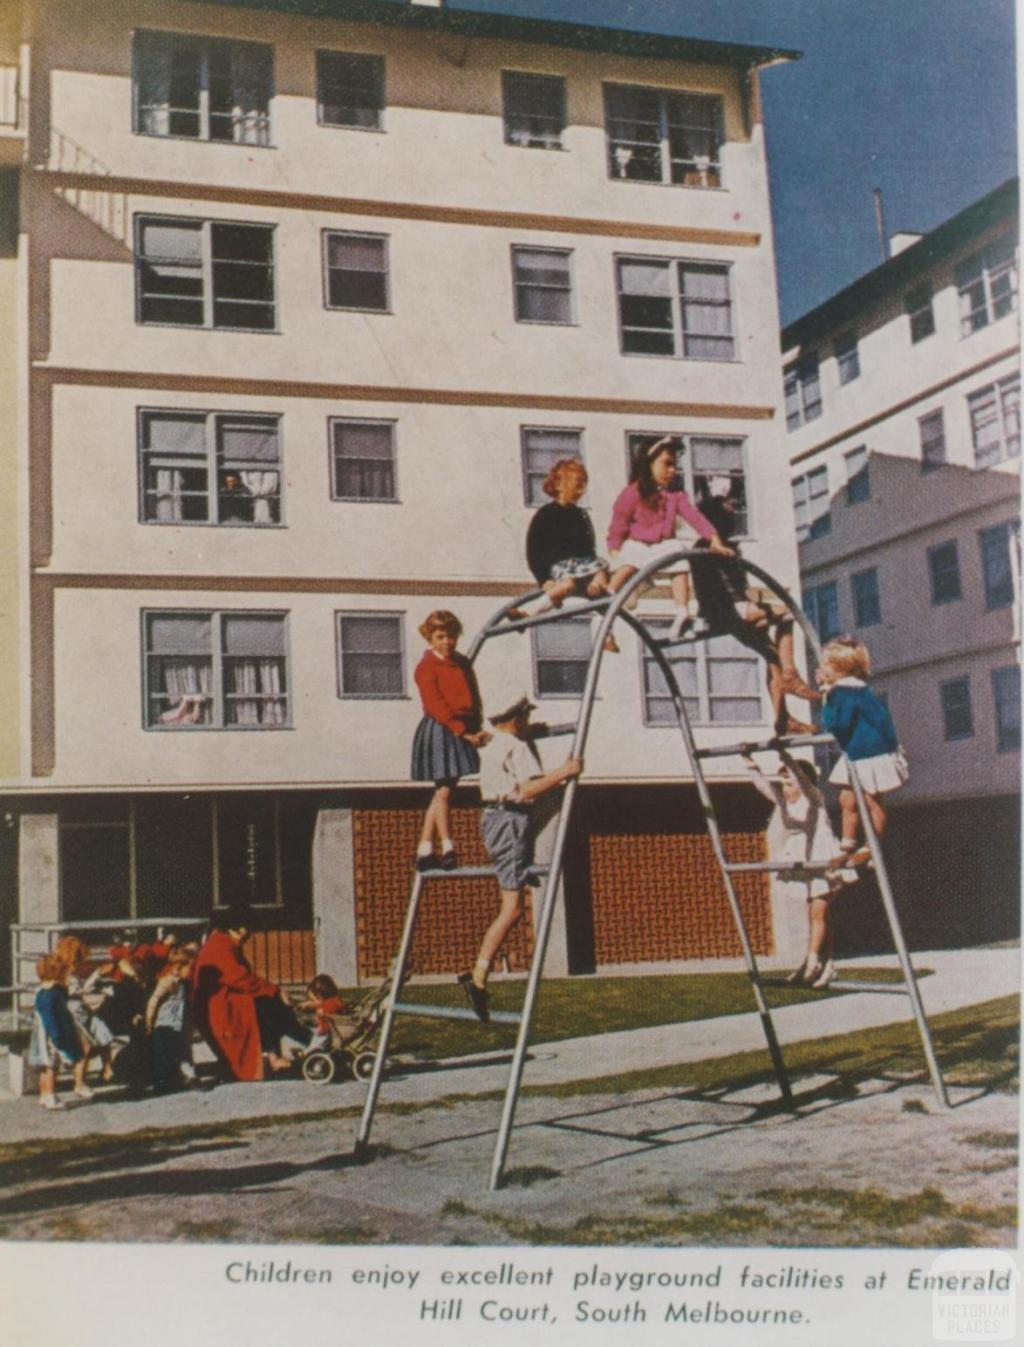 Children playing at Emerald Hill Court, South Melbourne, 1961